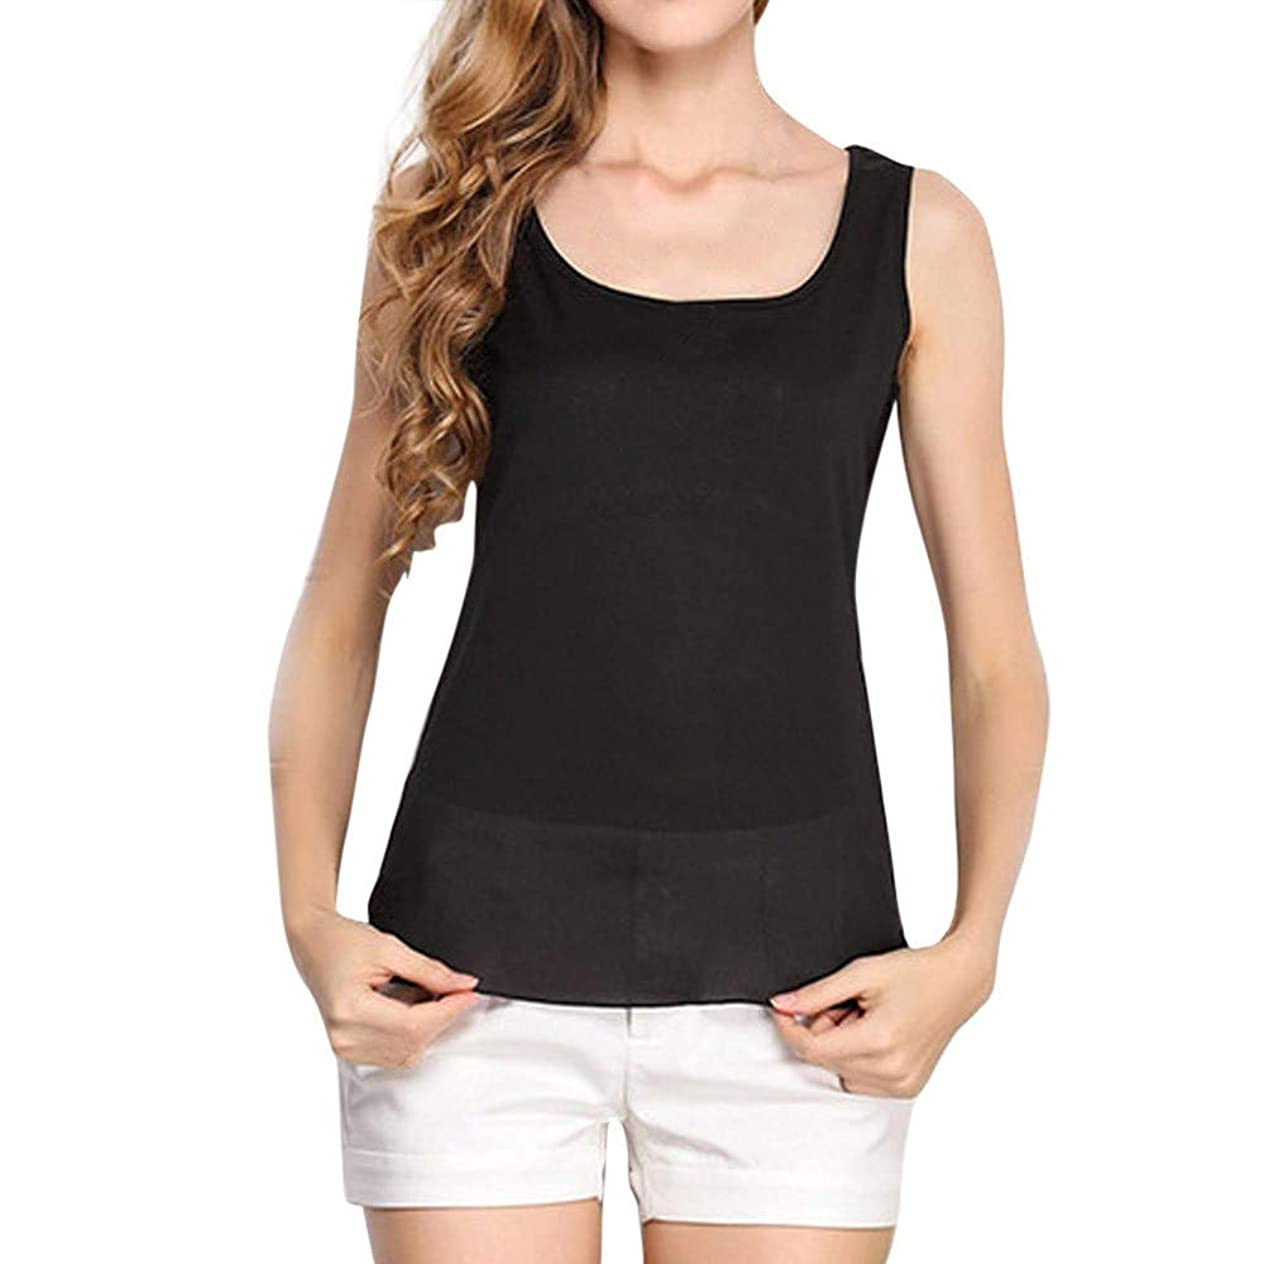 GOWOM Women O-Neck Sleeveless Pure Color Vest Chiffon Tops T-Shirt Blouse cchfhwlt994